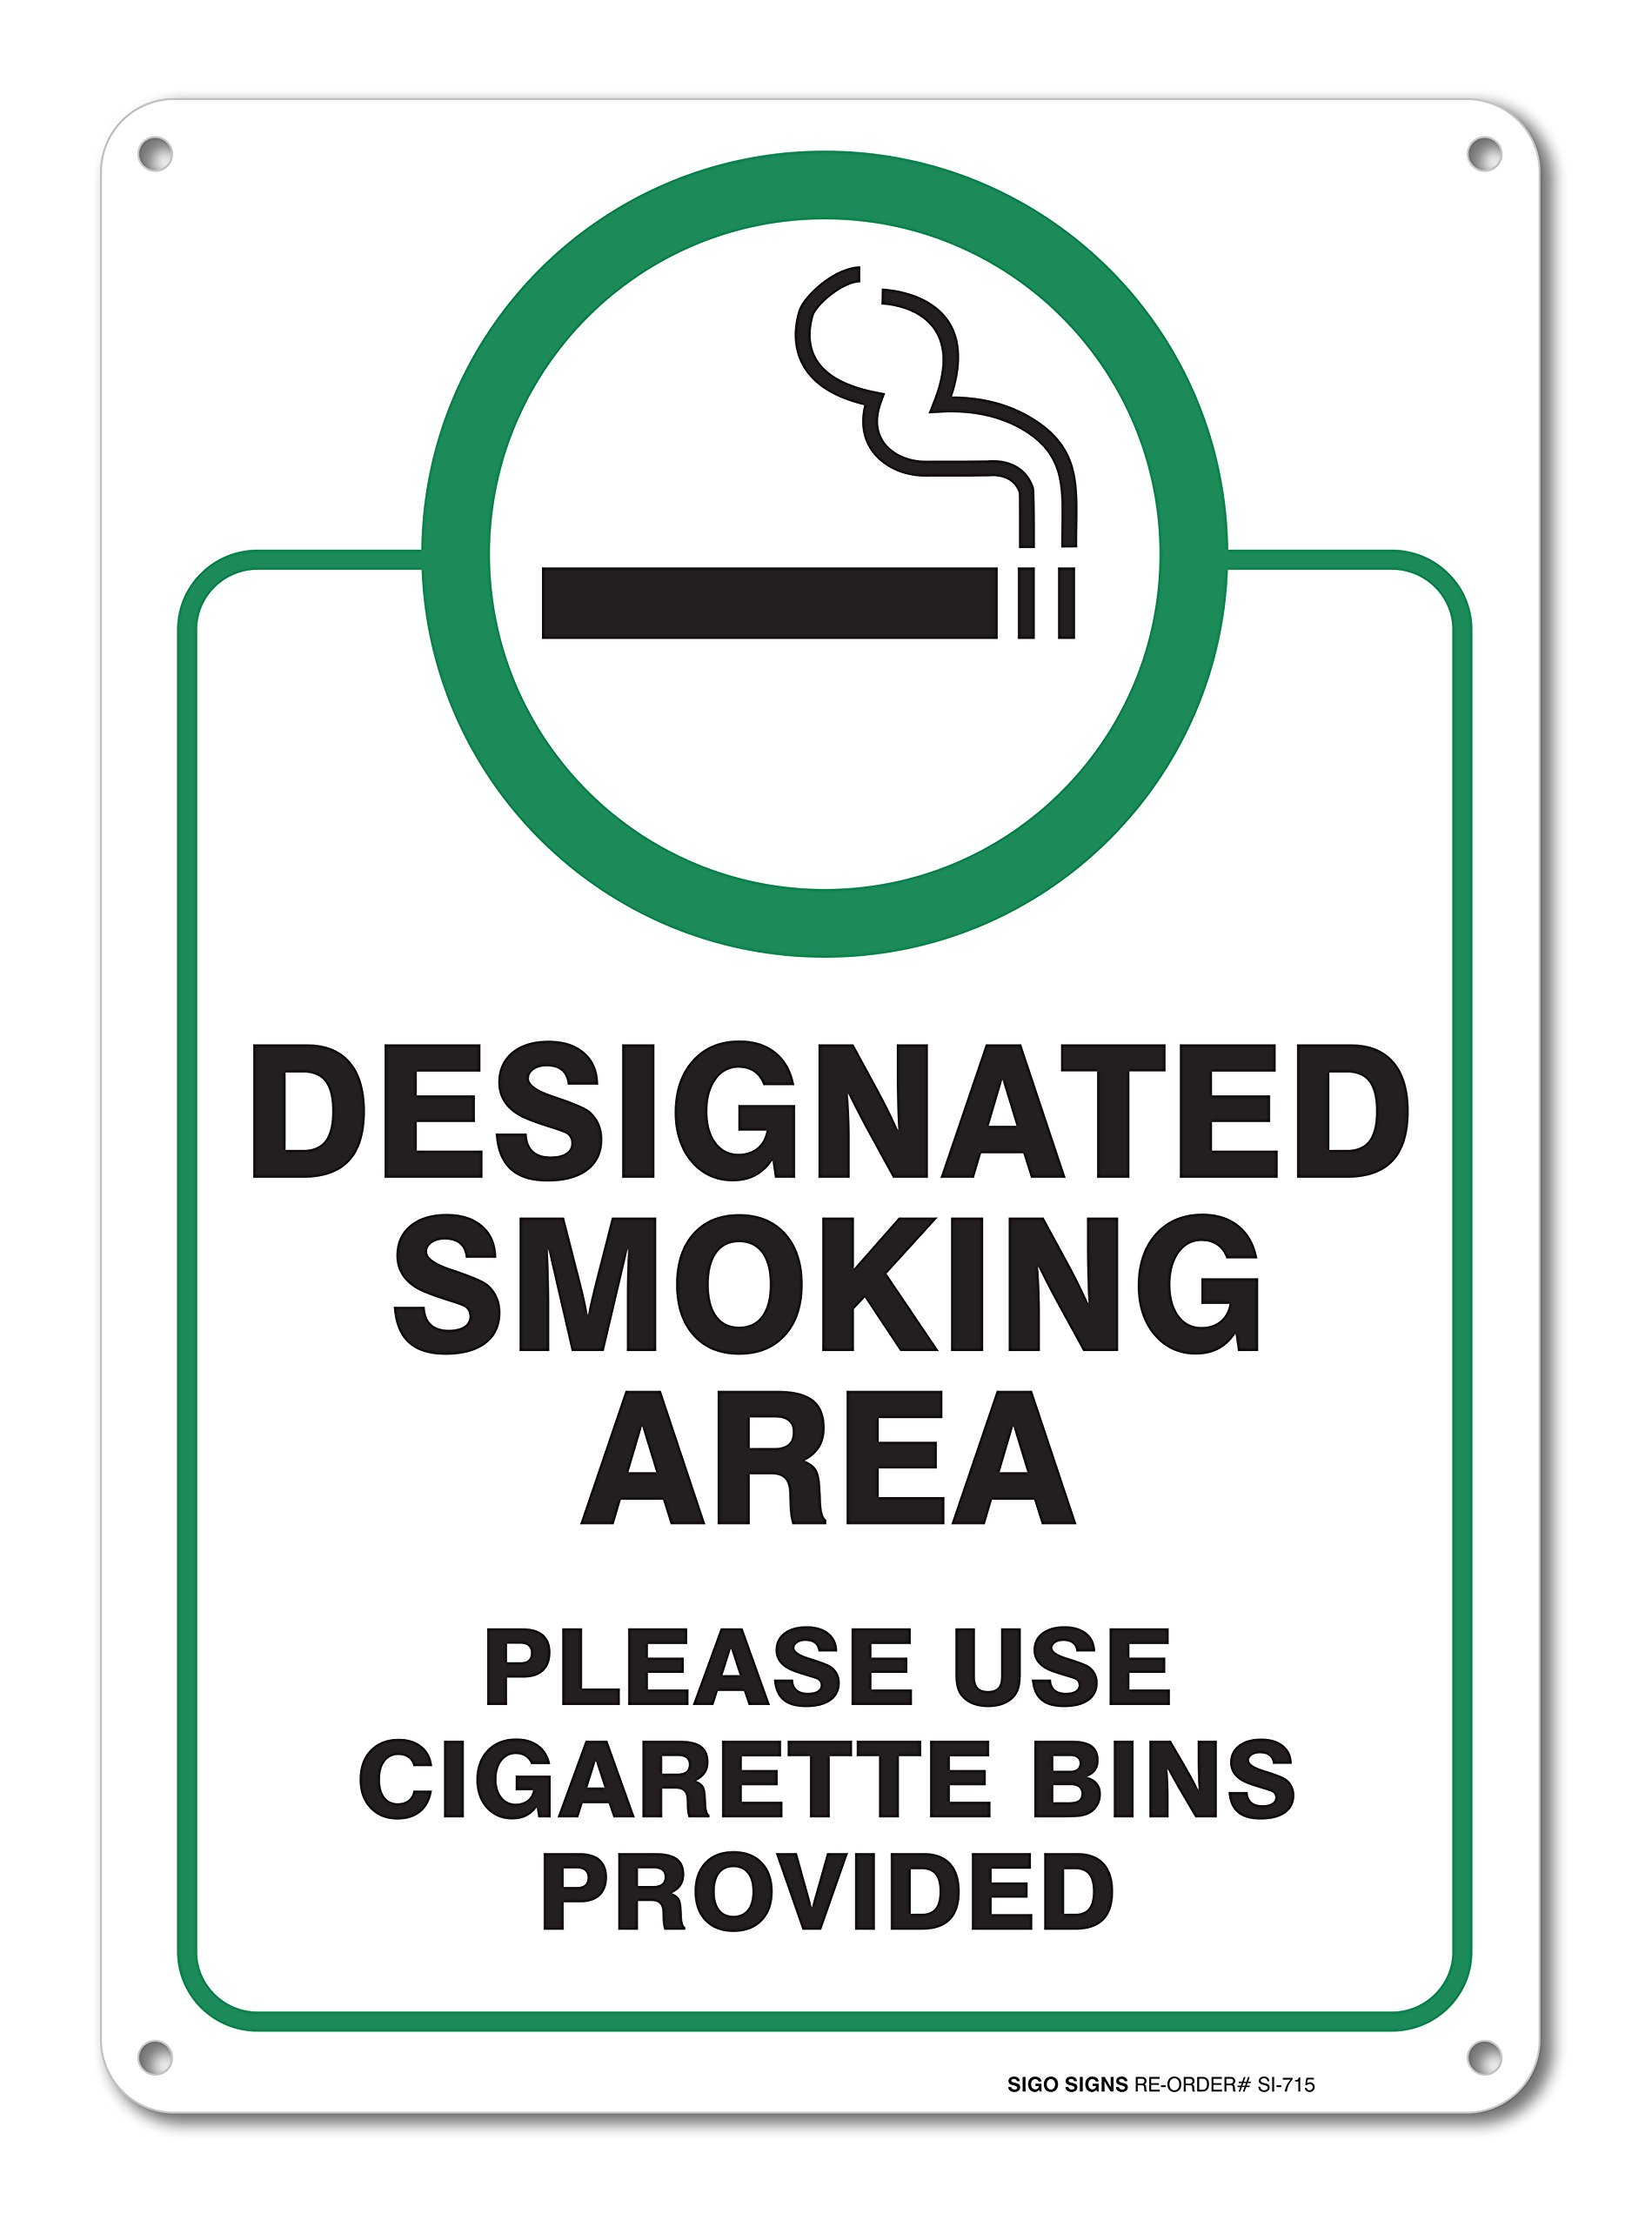 Designated Smoking Area Sign, Use Cigarette Bins Large 10x14'' Aluminum, for Indoor or Outdoor Use - by SIGO SIGNS